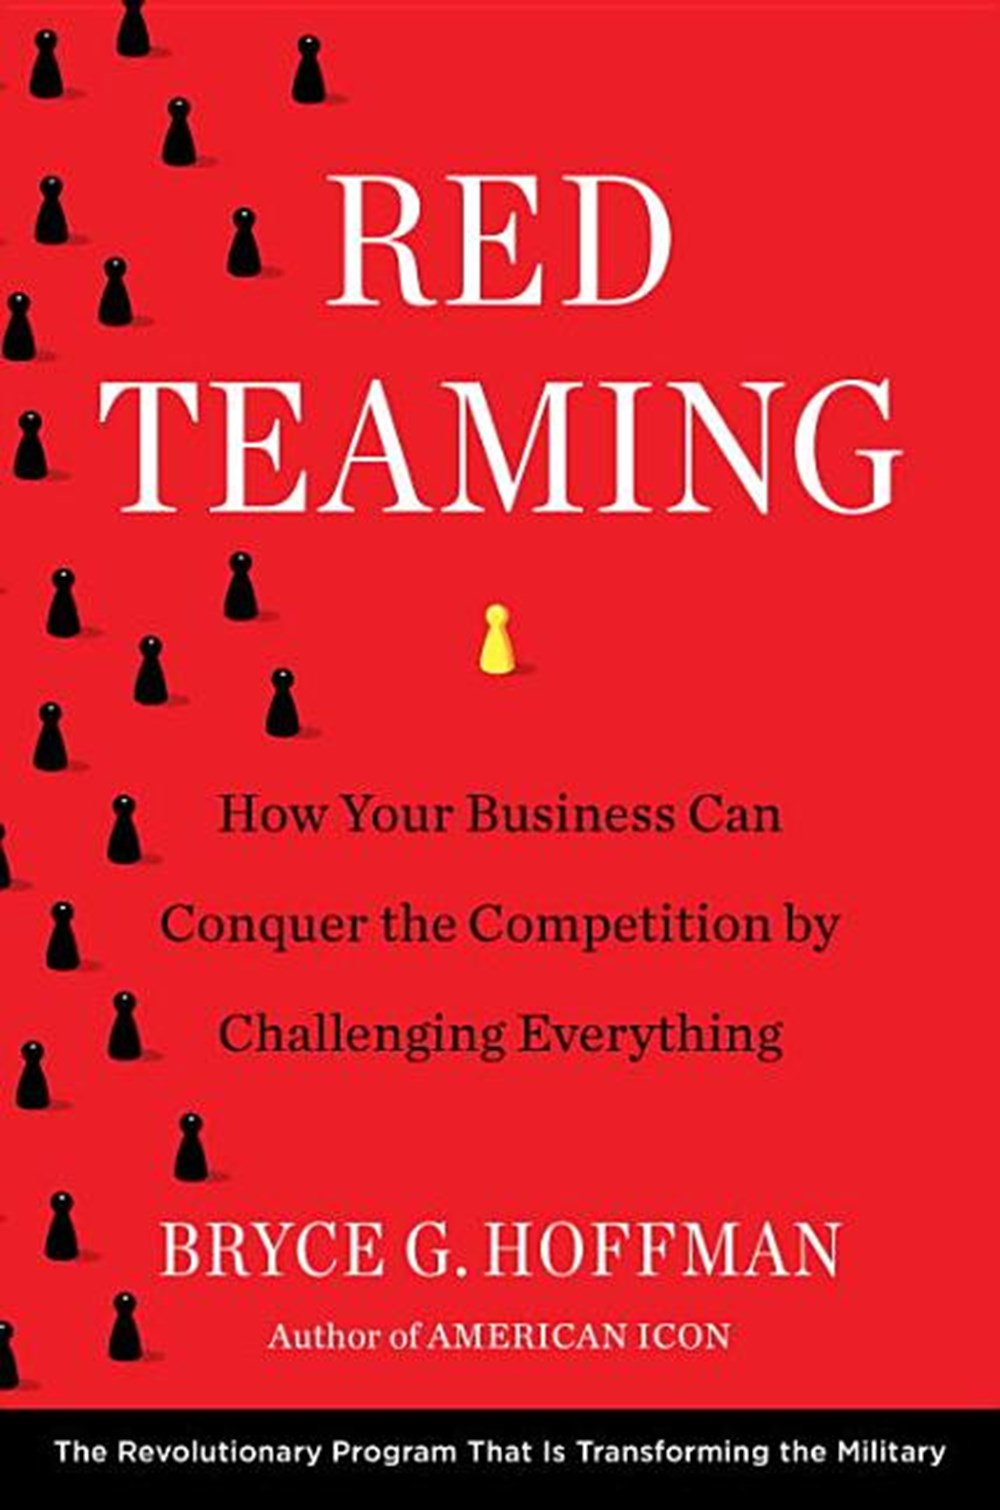 Red Teaming How Your Business Can Conquer the Competition by Challenging Everything